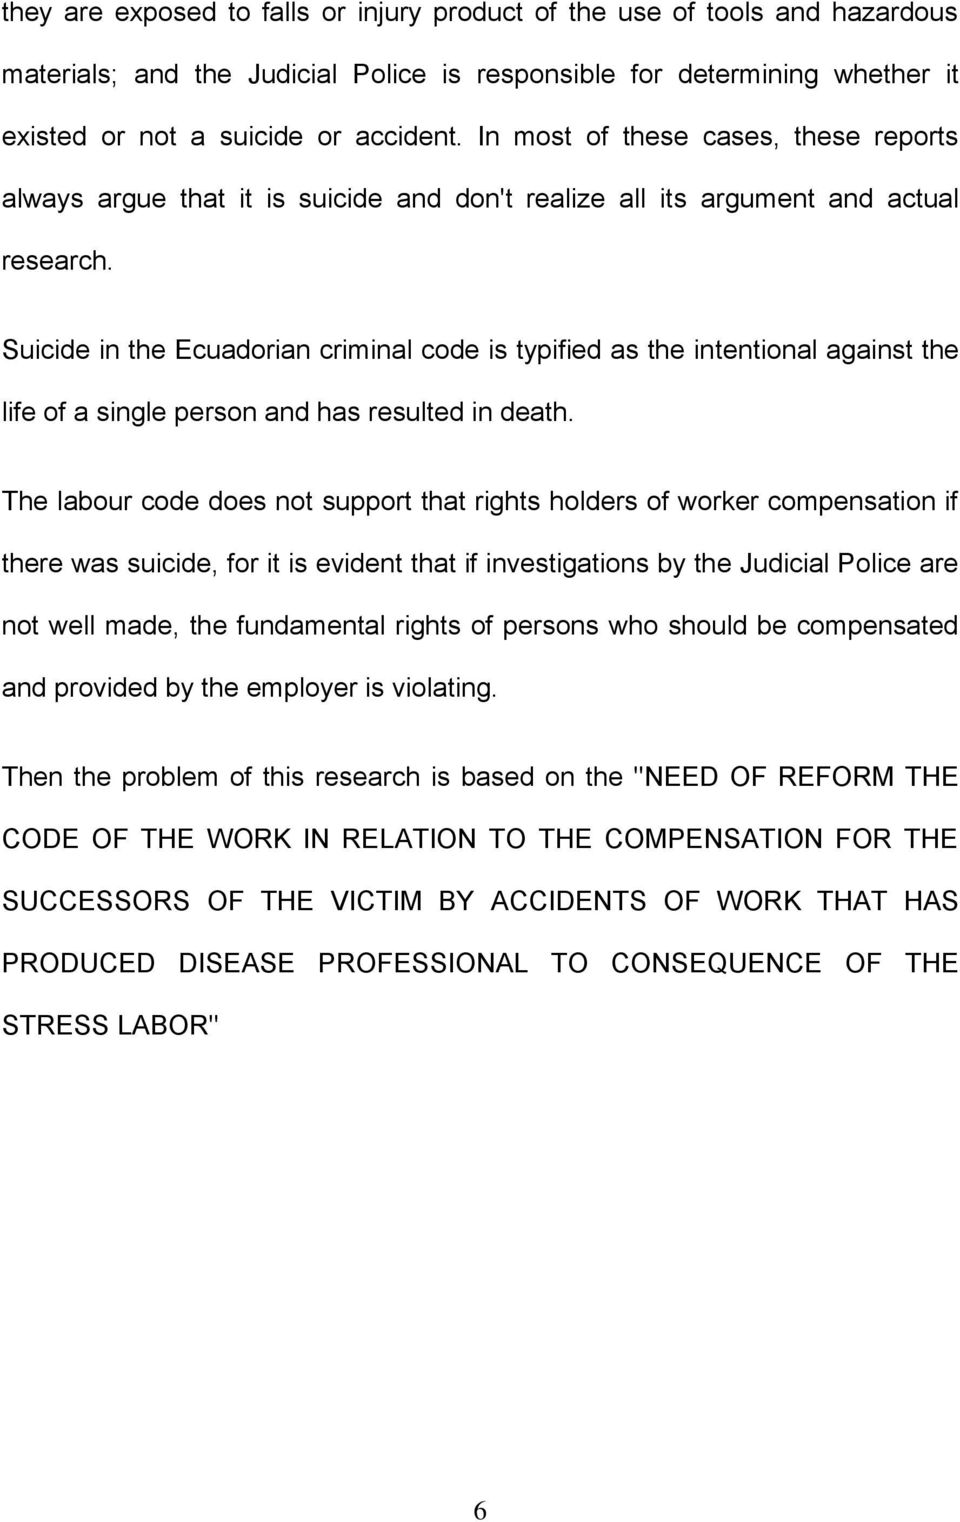 Suicide in the Ecuadorian criminal code is typified as the intentional against the life of a single person and has resulted in death.